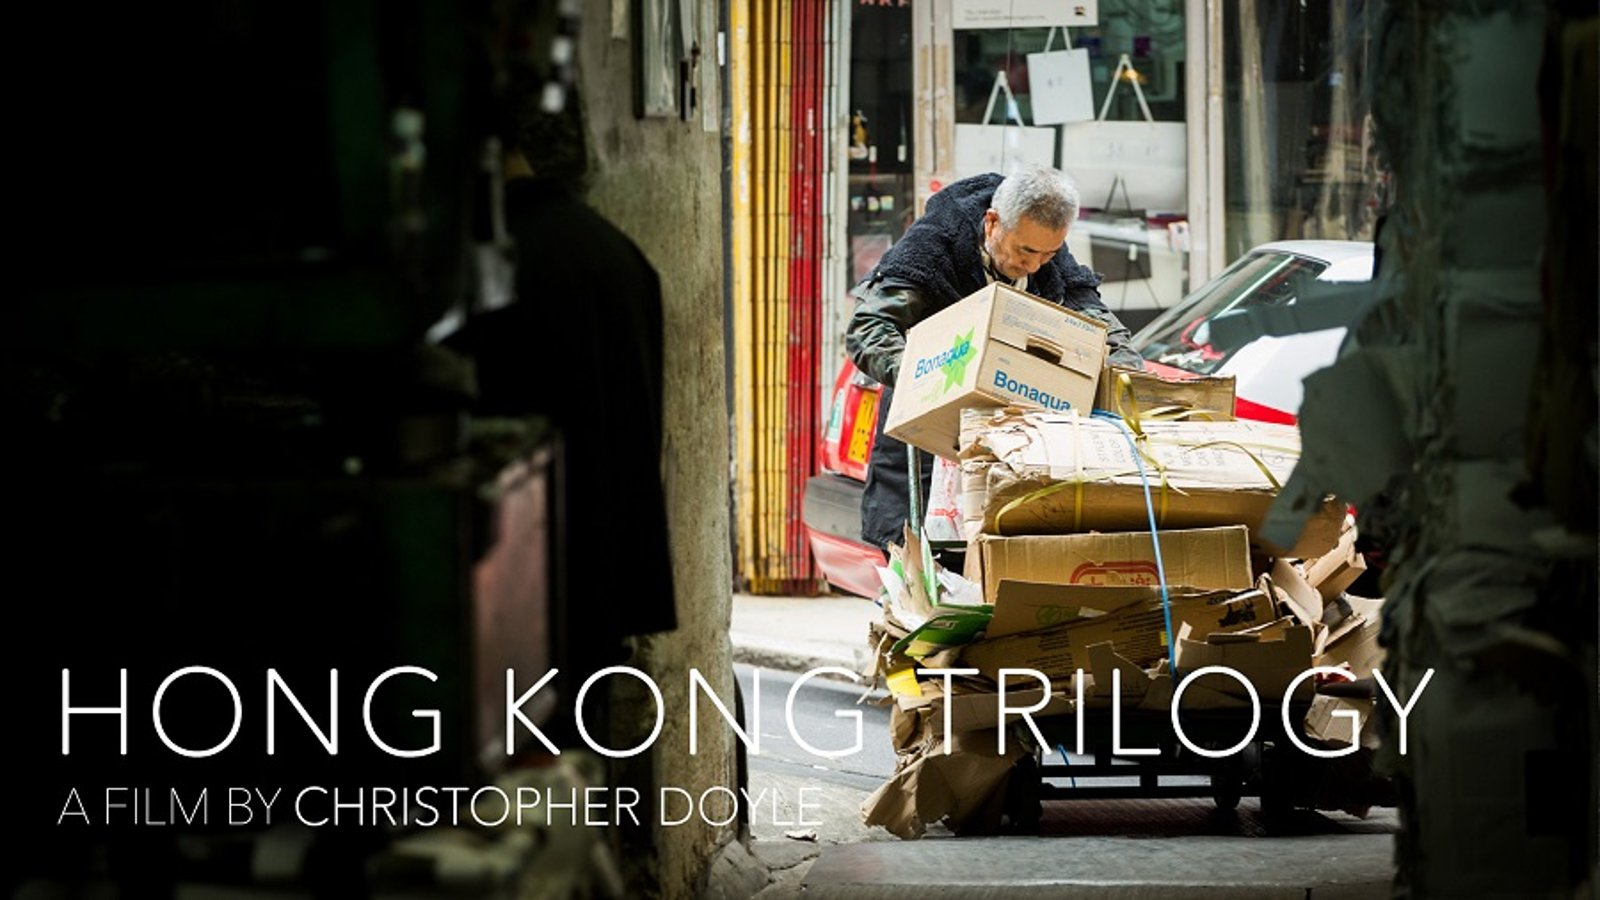 Hong Kong Trilogy: Preschooled Preoccupied Preposterous - A Celebration of a City and its People